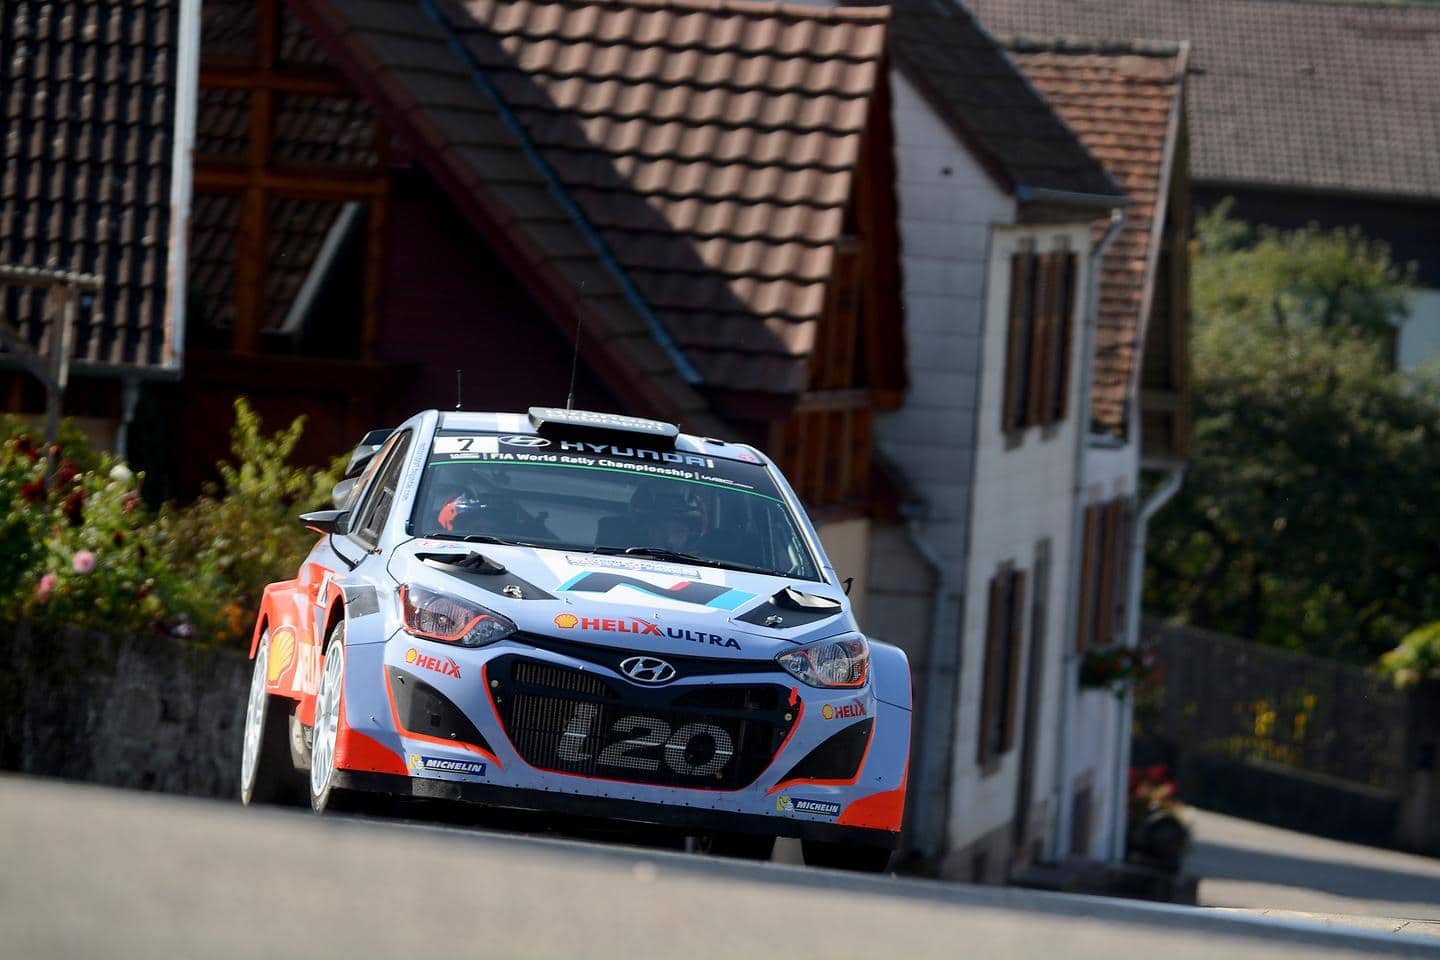 Mission accomplished for Hyundai Shell World Rally Team with three car finish in France